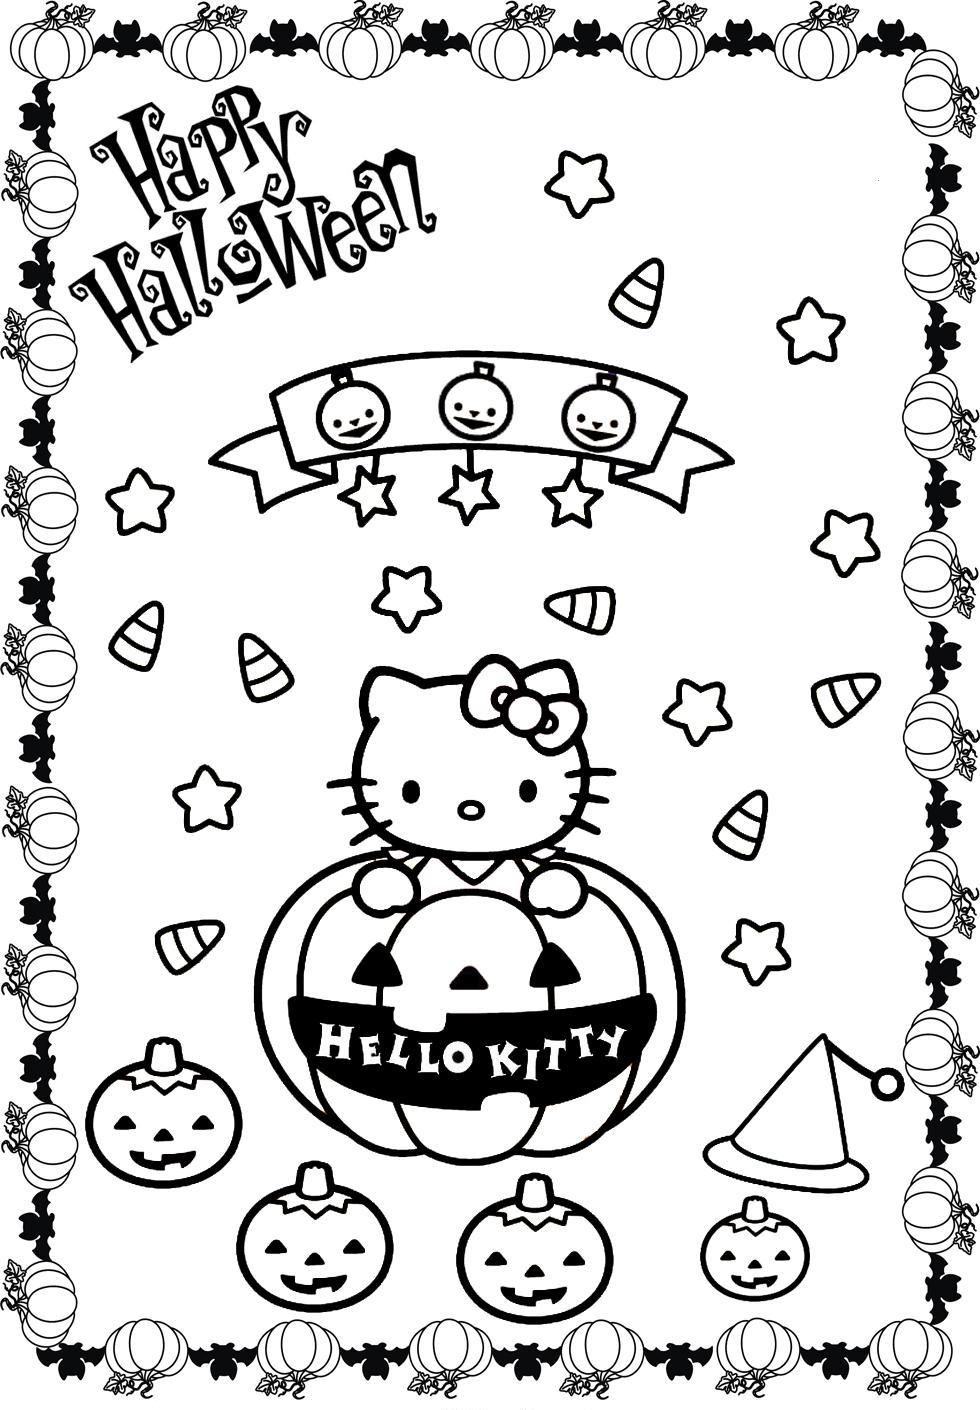 Hello Kitty Halloween Coloring Pages Best Coloring Pages For Kids Hello Kitty Colouring Pages Hello Kitty Coloring Hello Kitty Halloween